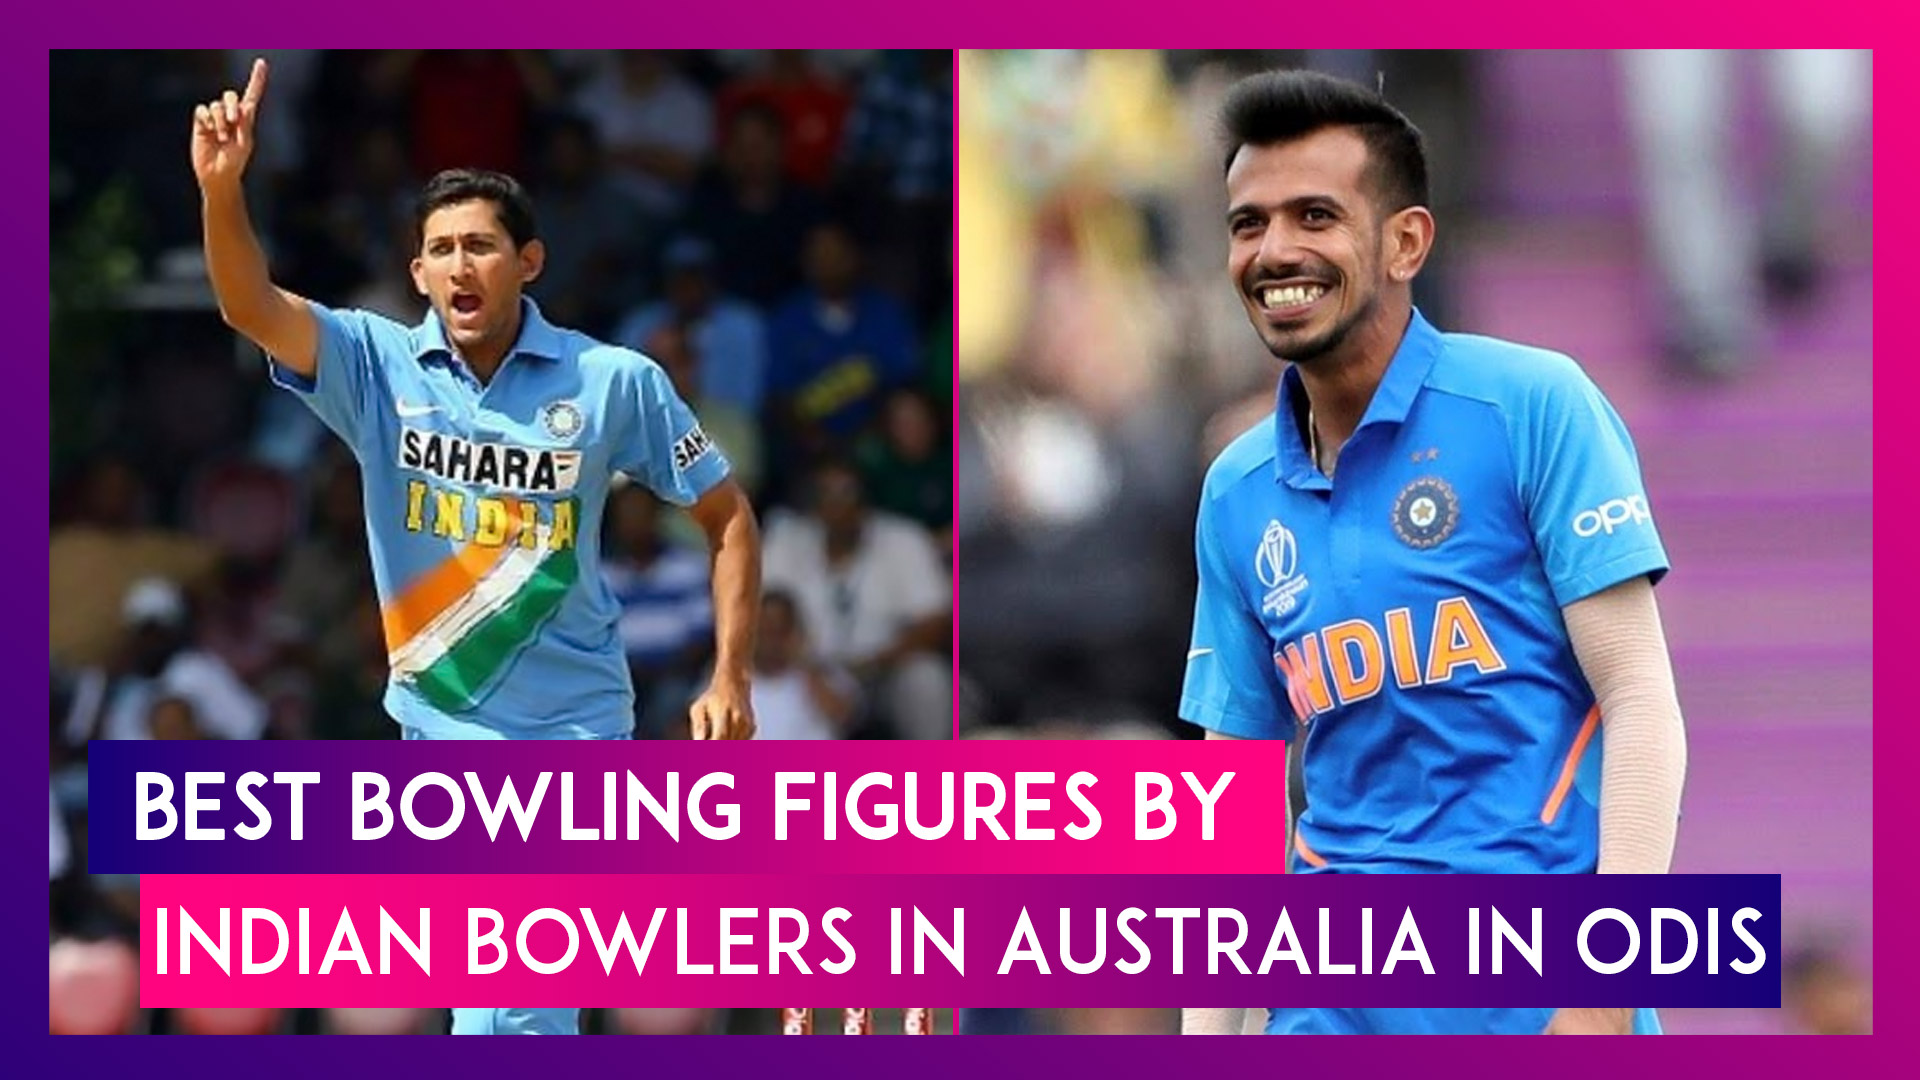 From Kapil Dev to Yuzvendra Chahal, Best Bowling Figures By Indian Bowlers In Australia In ODIs